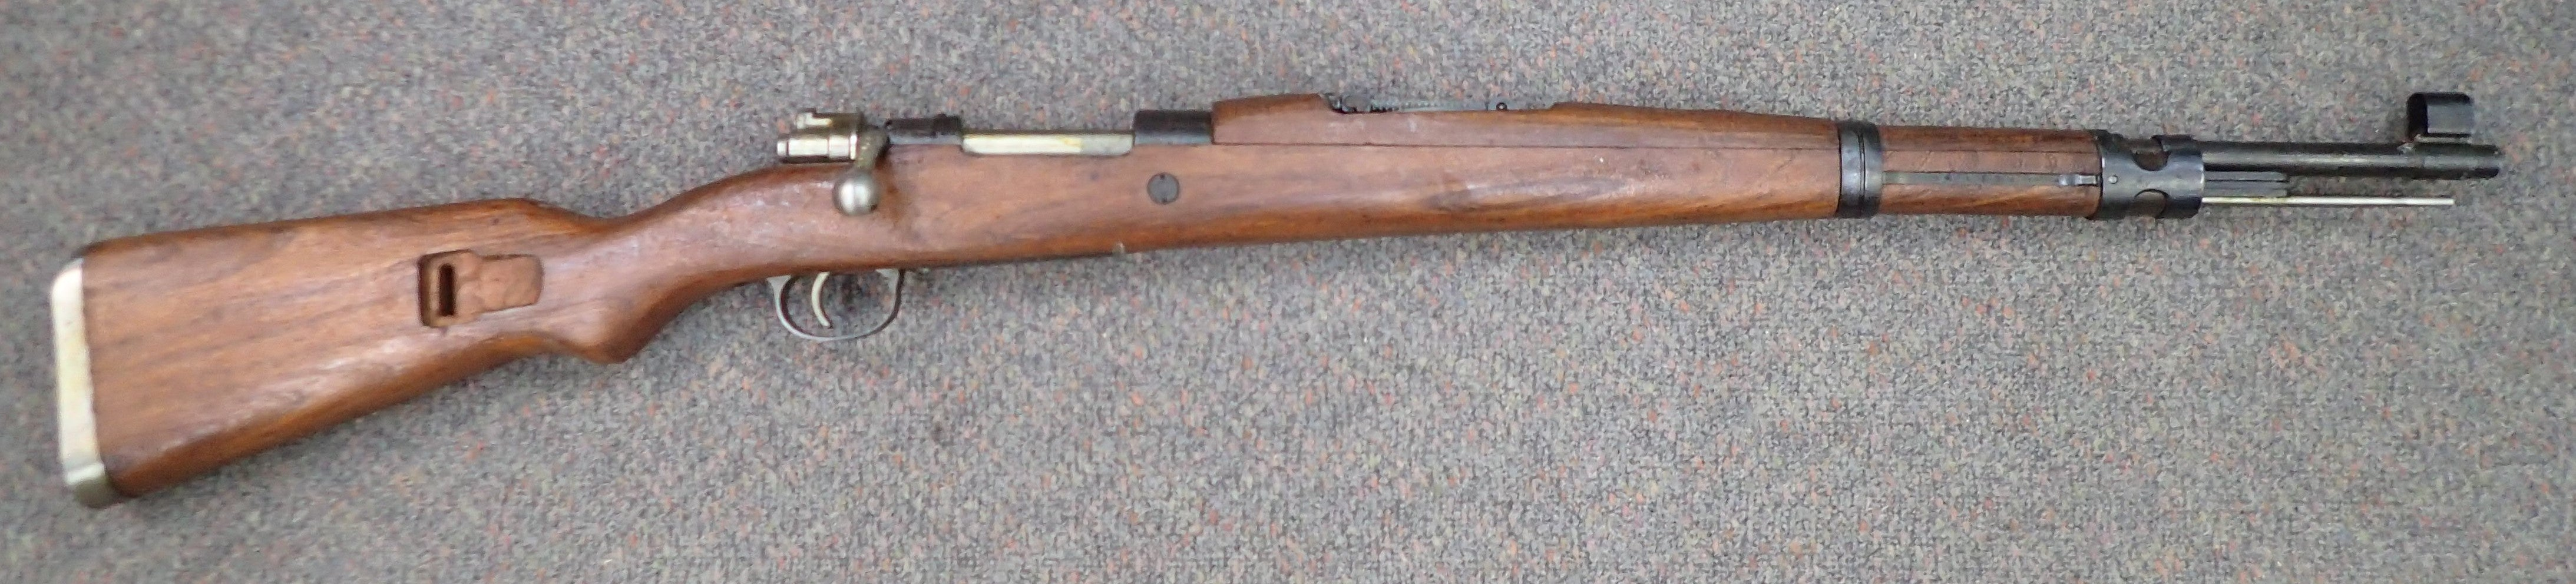 Mauser yugo m48 Collecting and